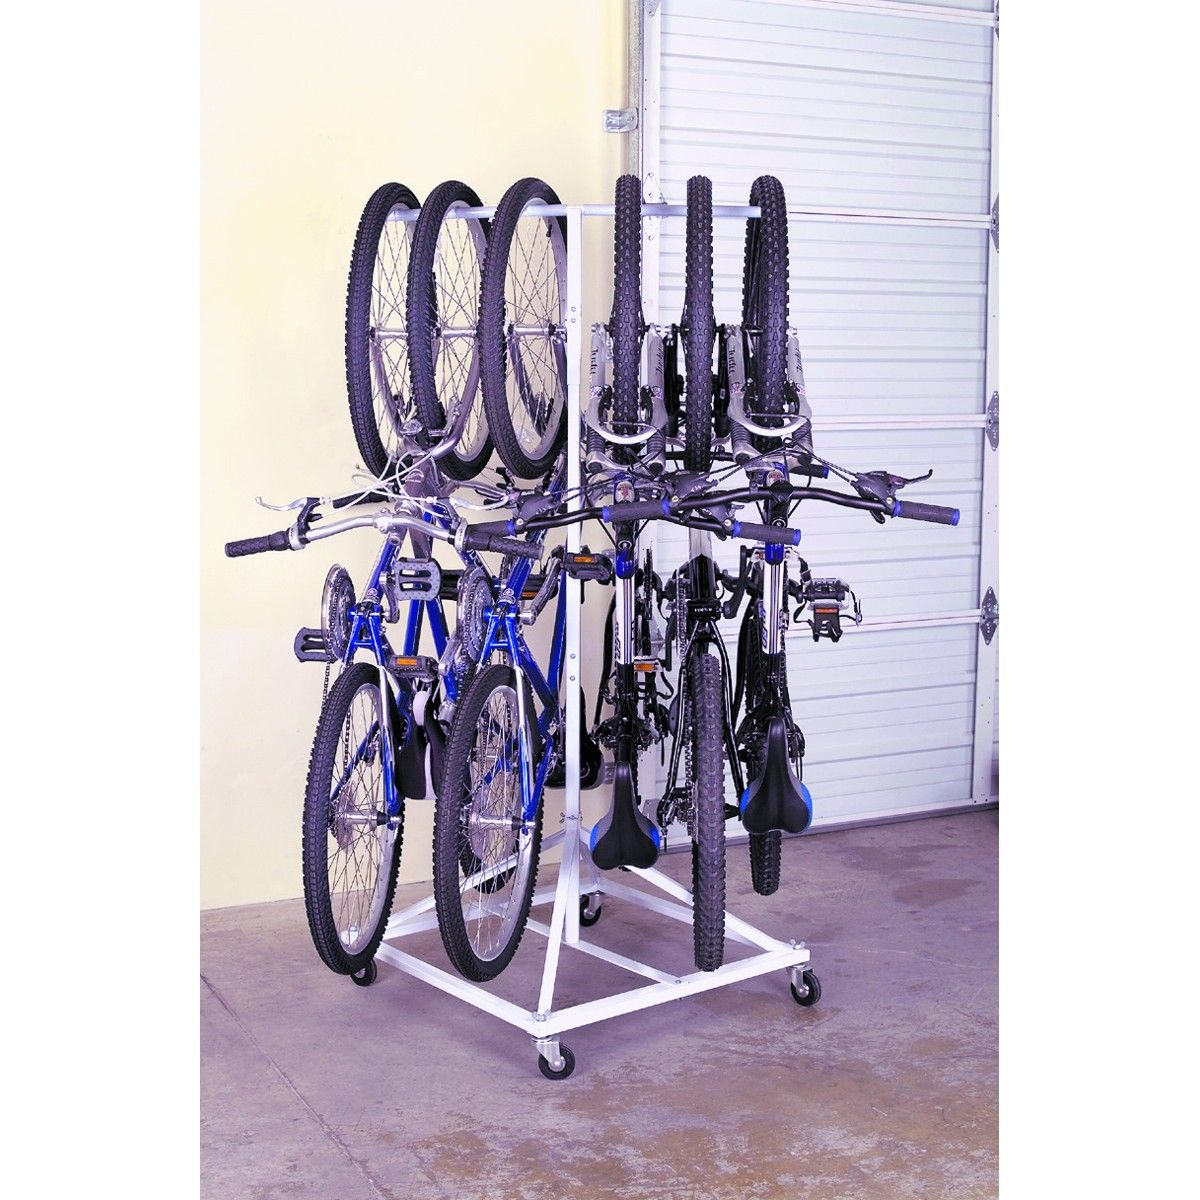 Merveilleux 2628 Cycle Tree Compact Bike Storage $40 At Harbor Freight